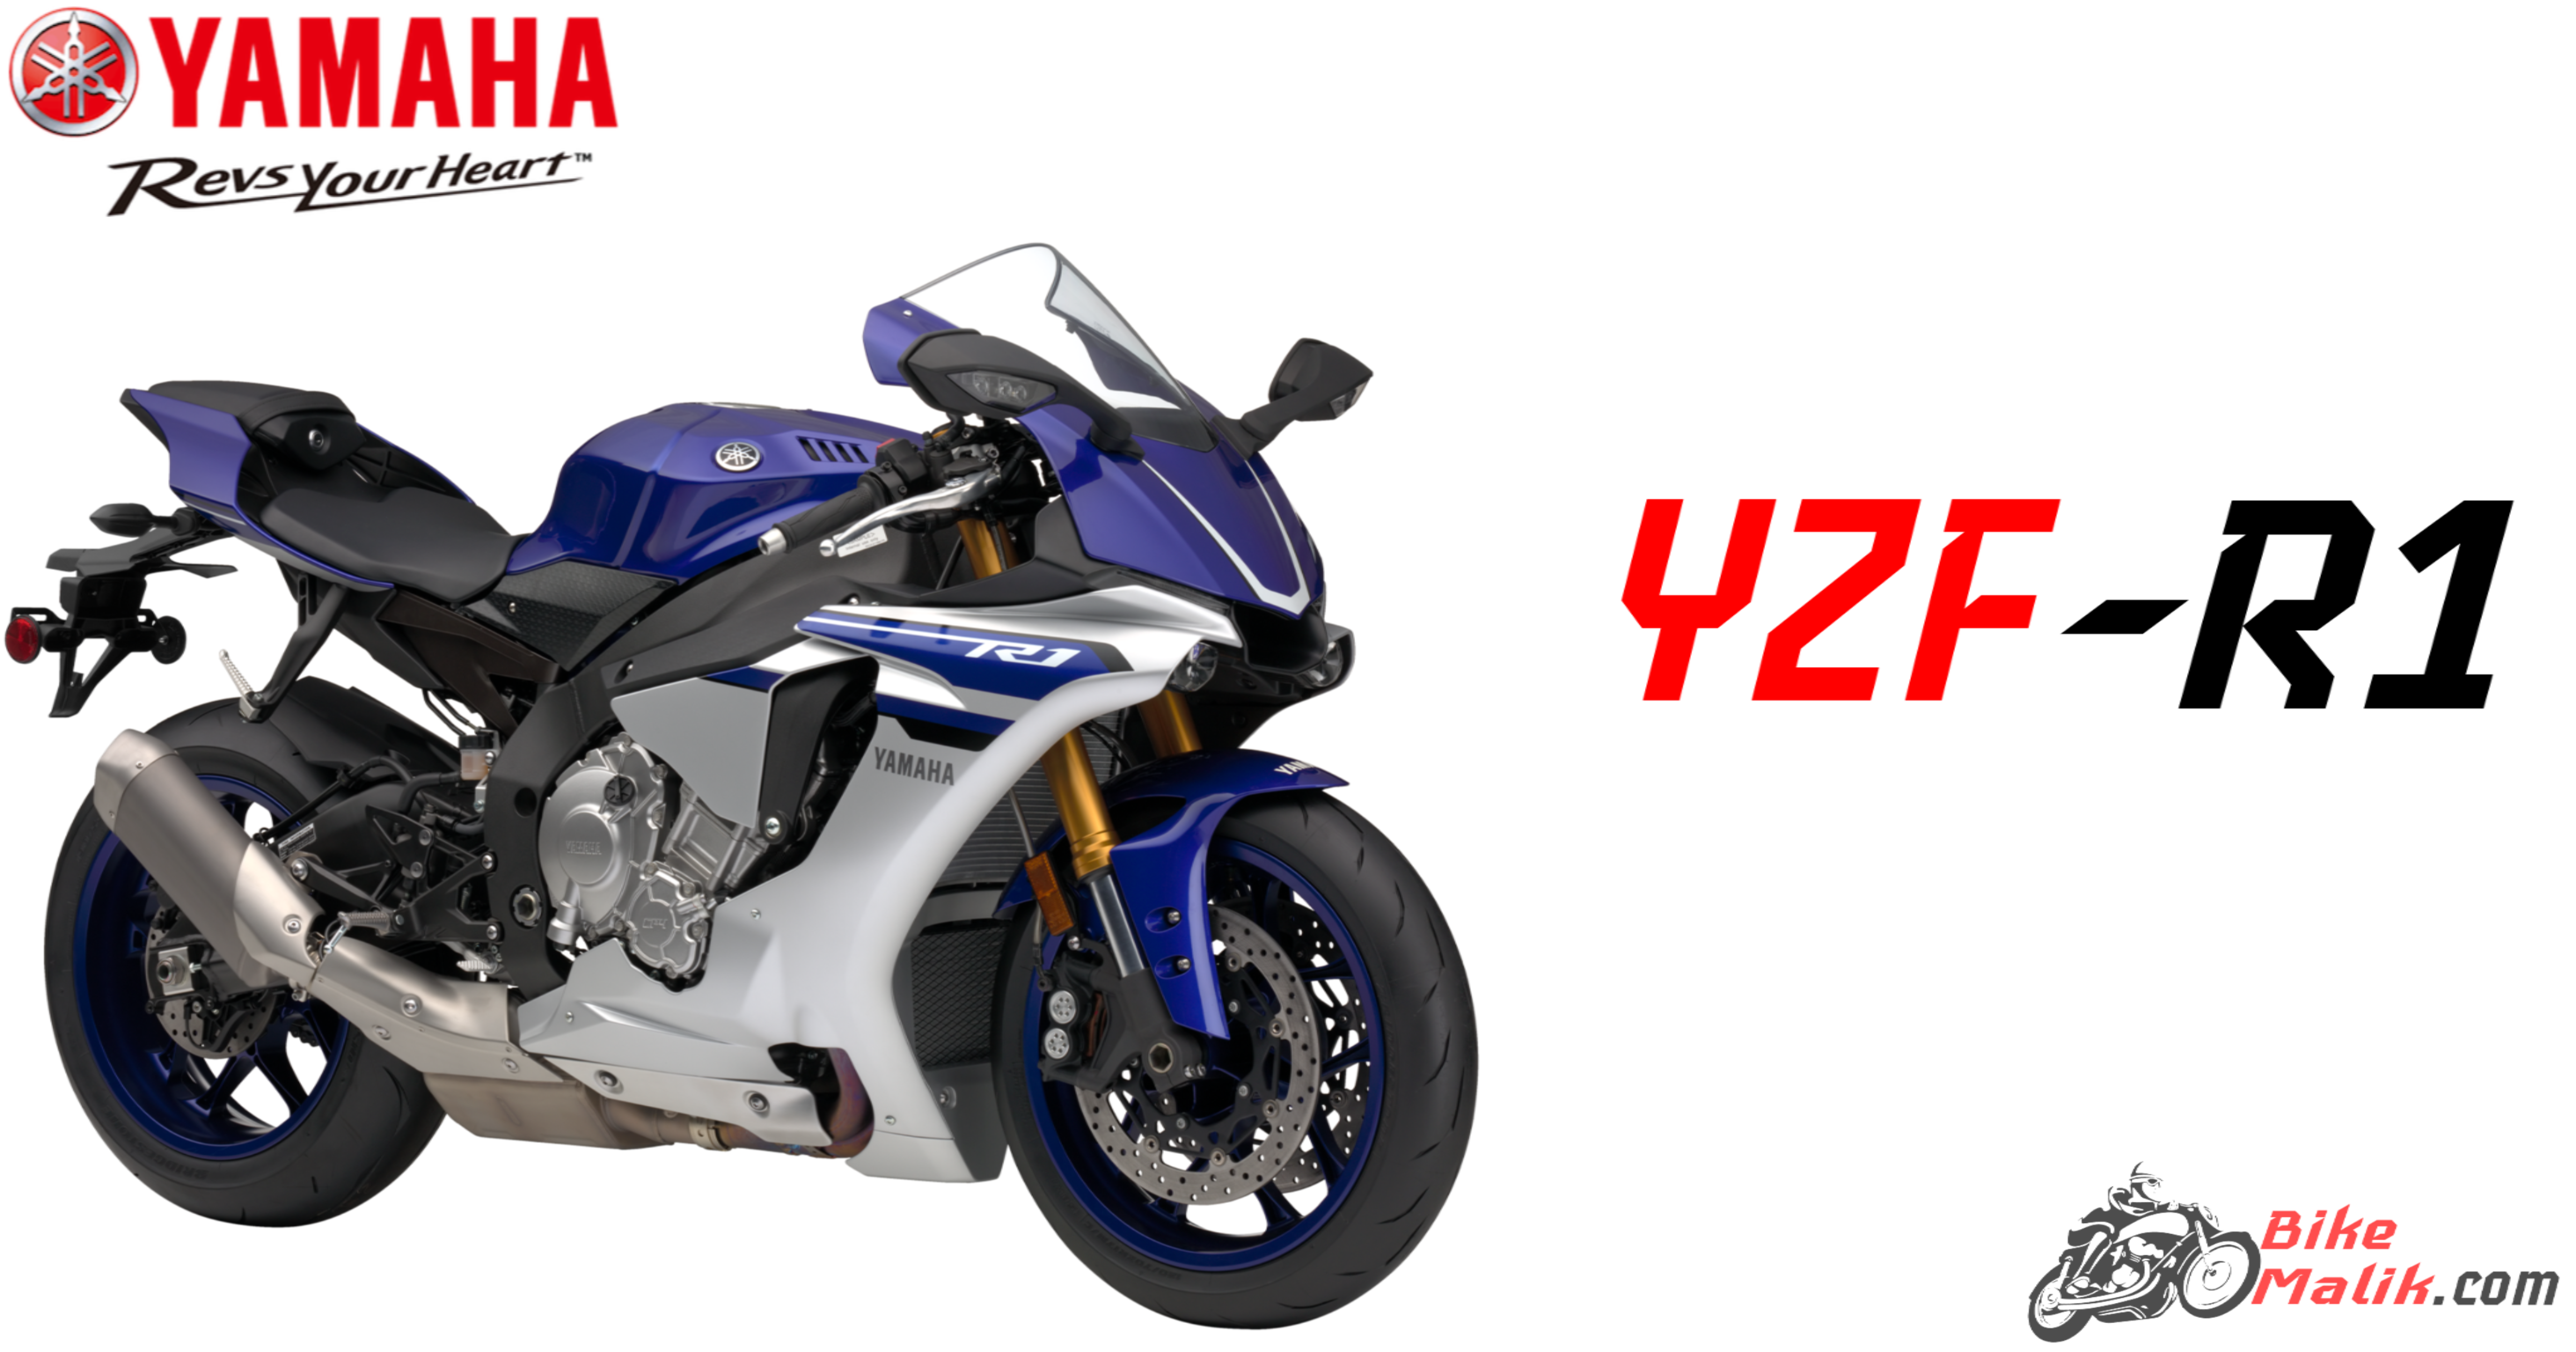 Yamaha YZF R1 Specs, Features, Price, Mileage, Colors, Performance & 360-View